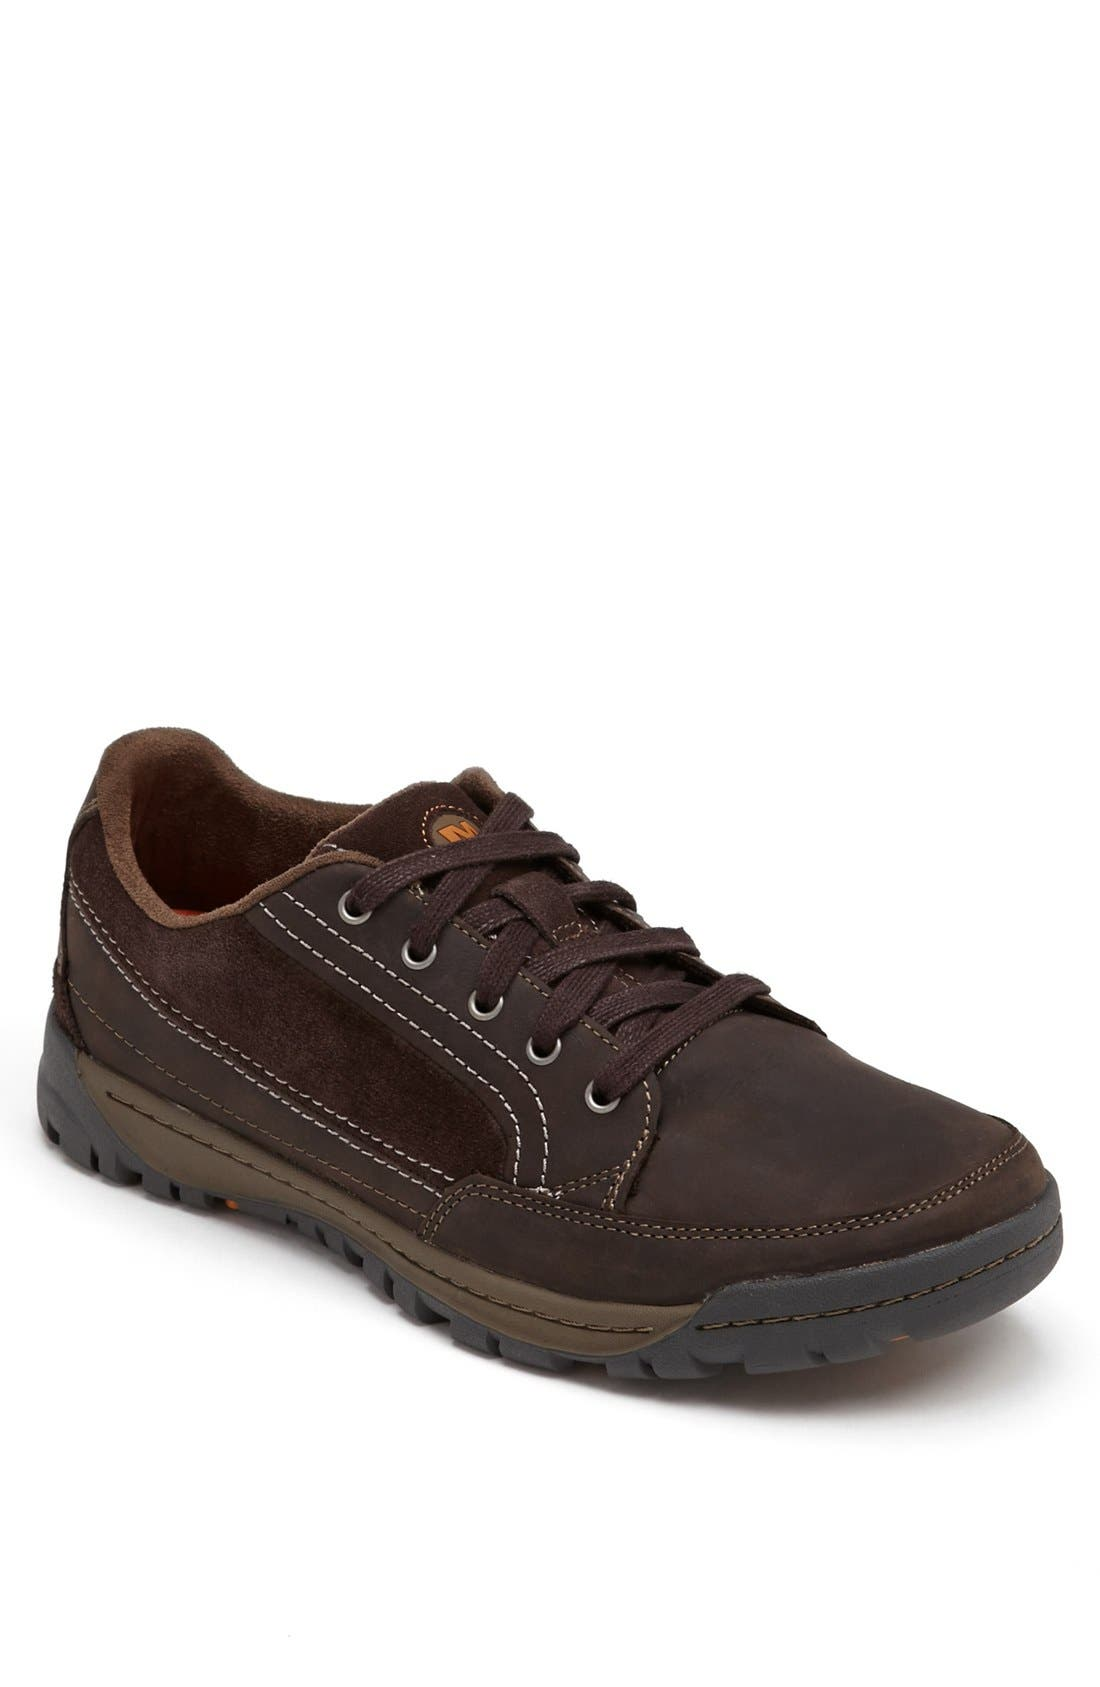 Alternate Image 1 Selected - Merrell 'Traveler Sphere' Sneaker (Men)